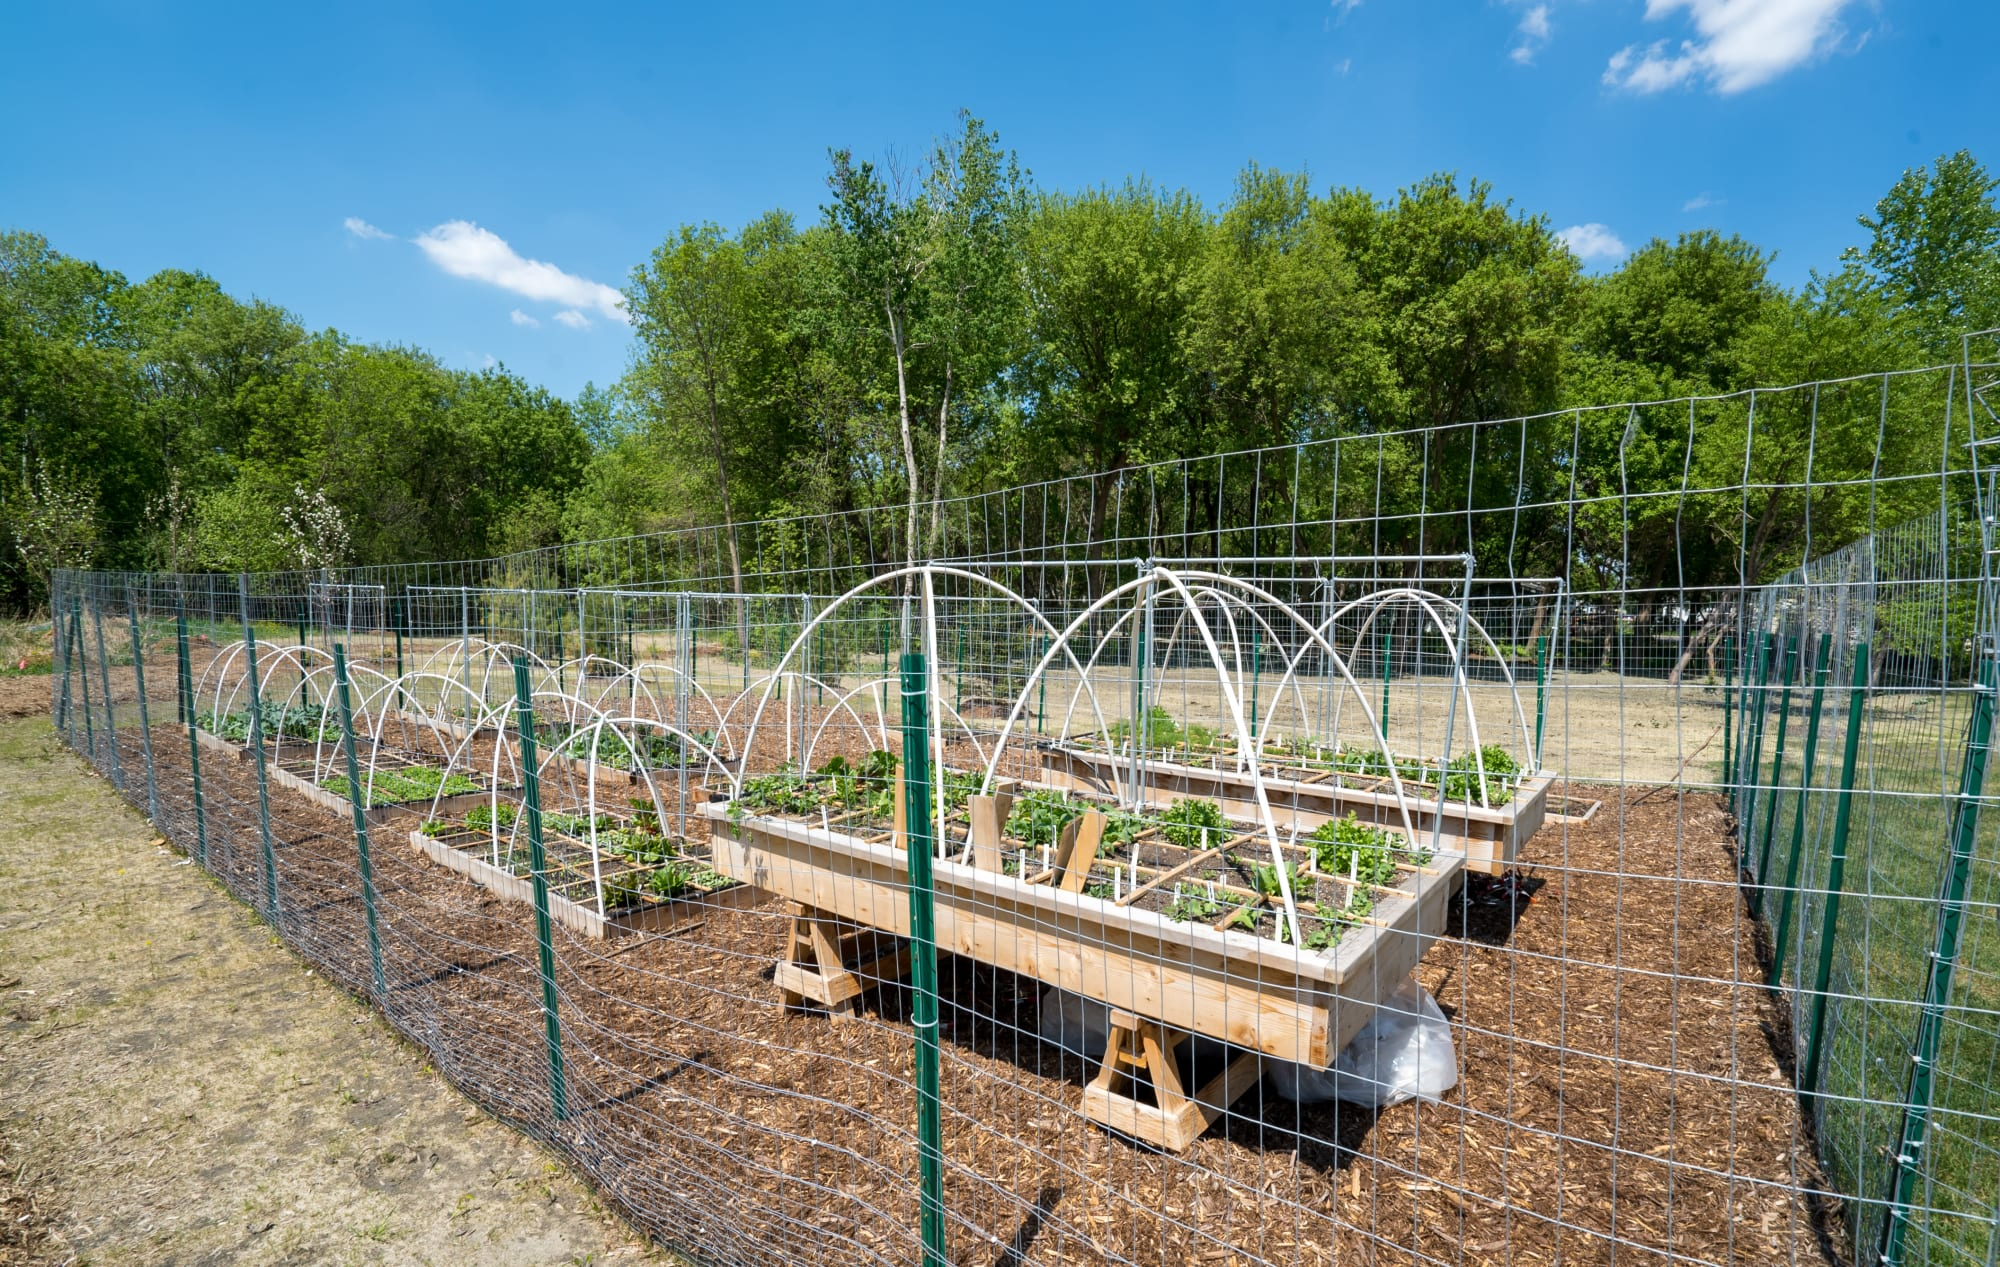 Awesome community garden at Berkshire Central in Blaine, Minnesota